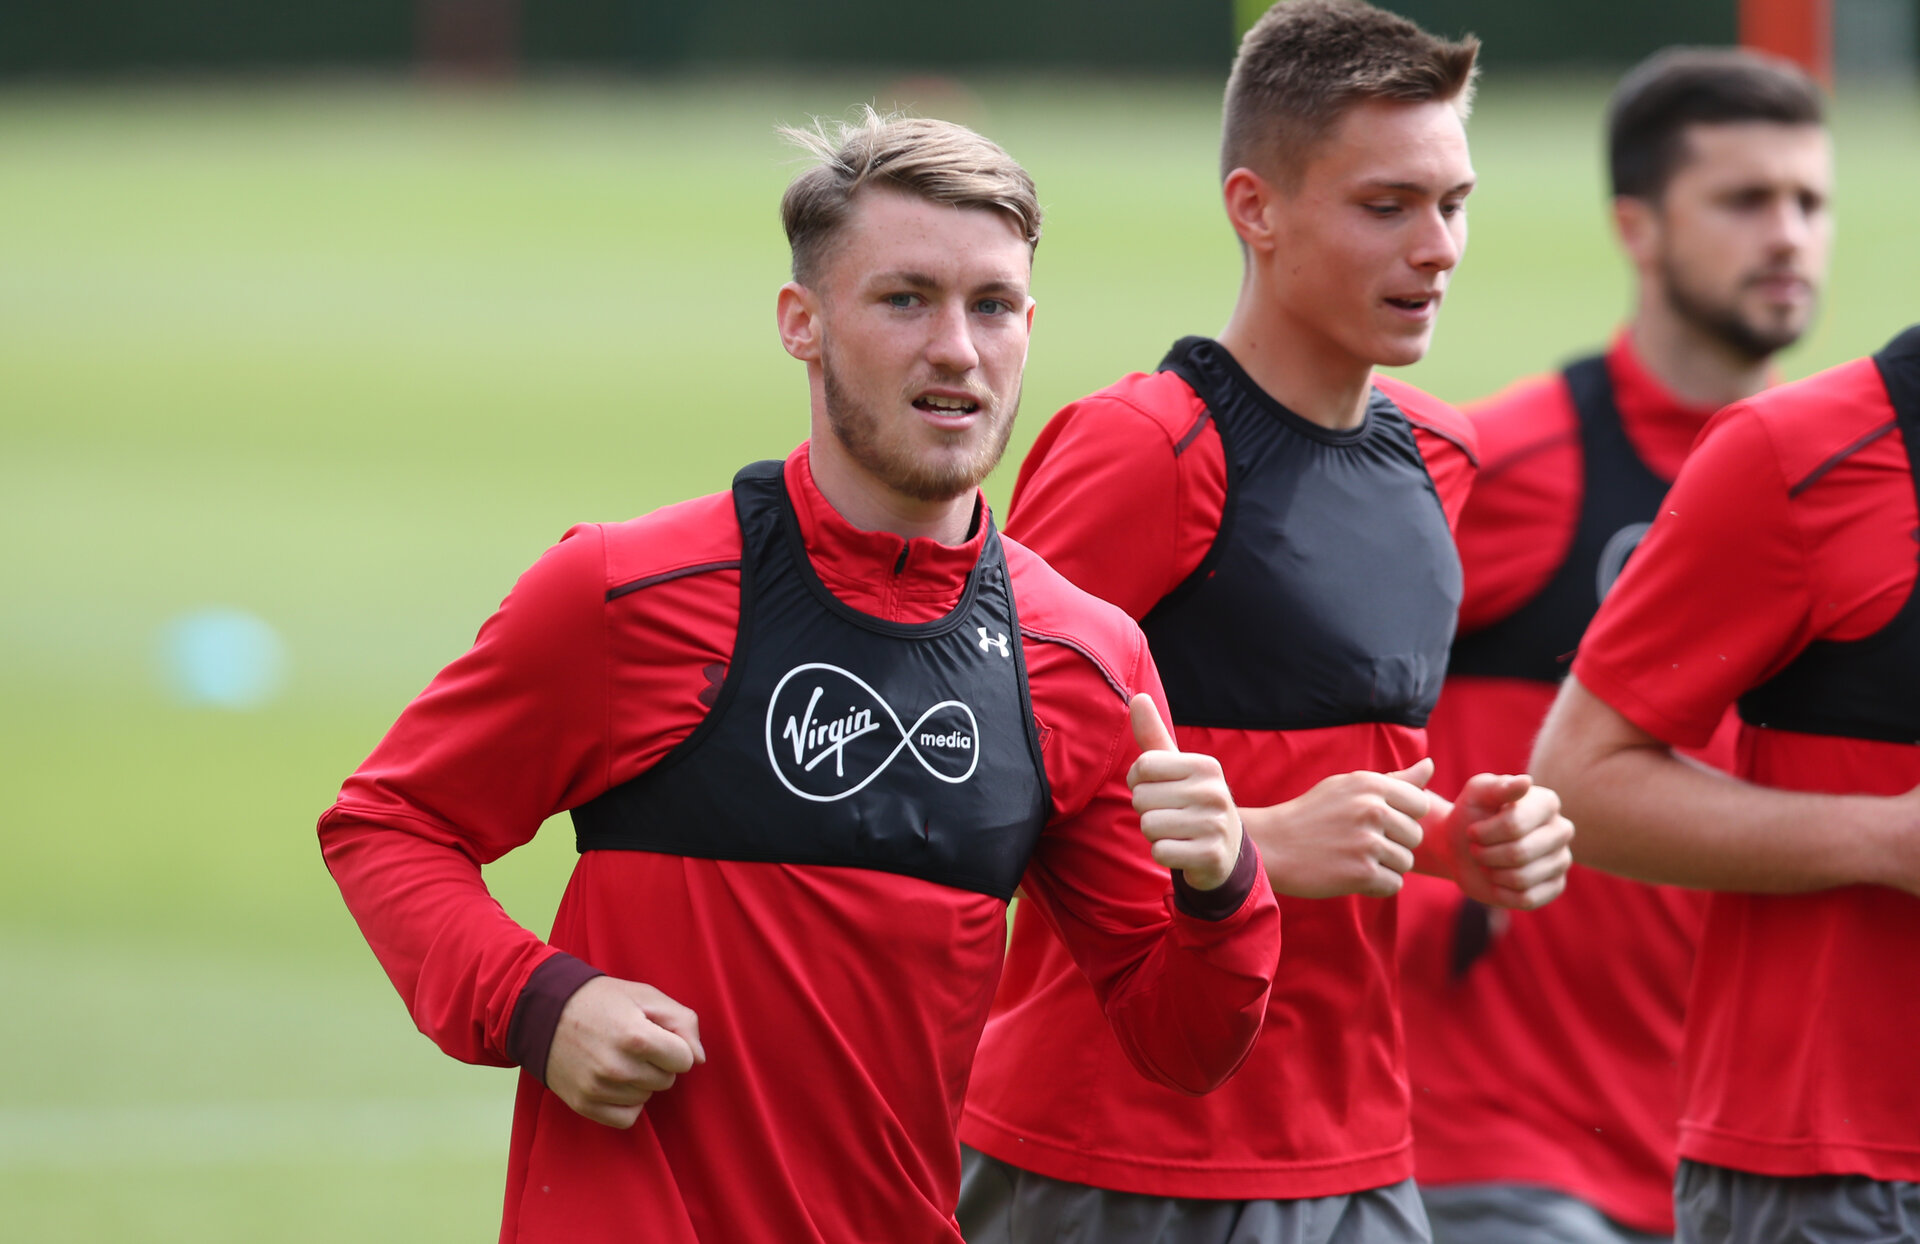 SOUTHAMPTON, ENGLAND - MAY 11: Callum Slattery during a Southampton FC training session at the Staplewood Campus on May 11, 2018 in Southampton, England. (Photo by Matt Watson/Southampton FC via Getty Images)